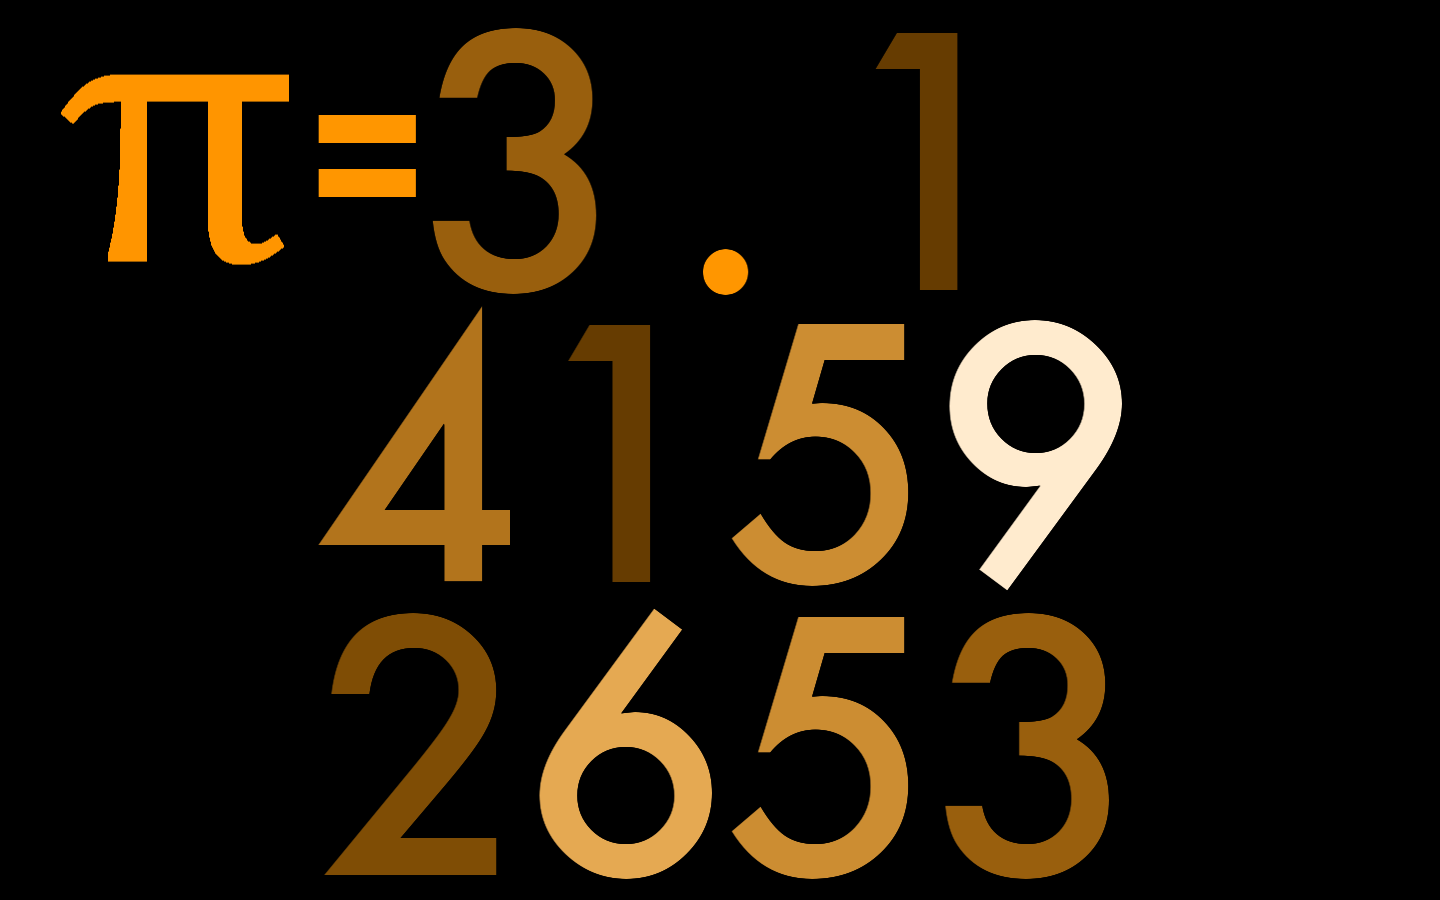 The value of pi converged with 10 decimal places.